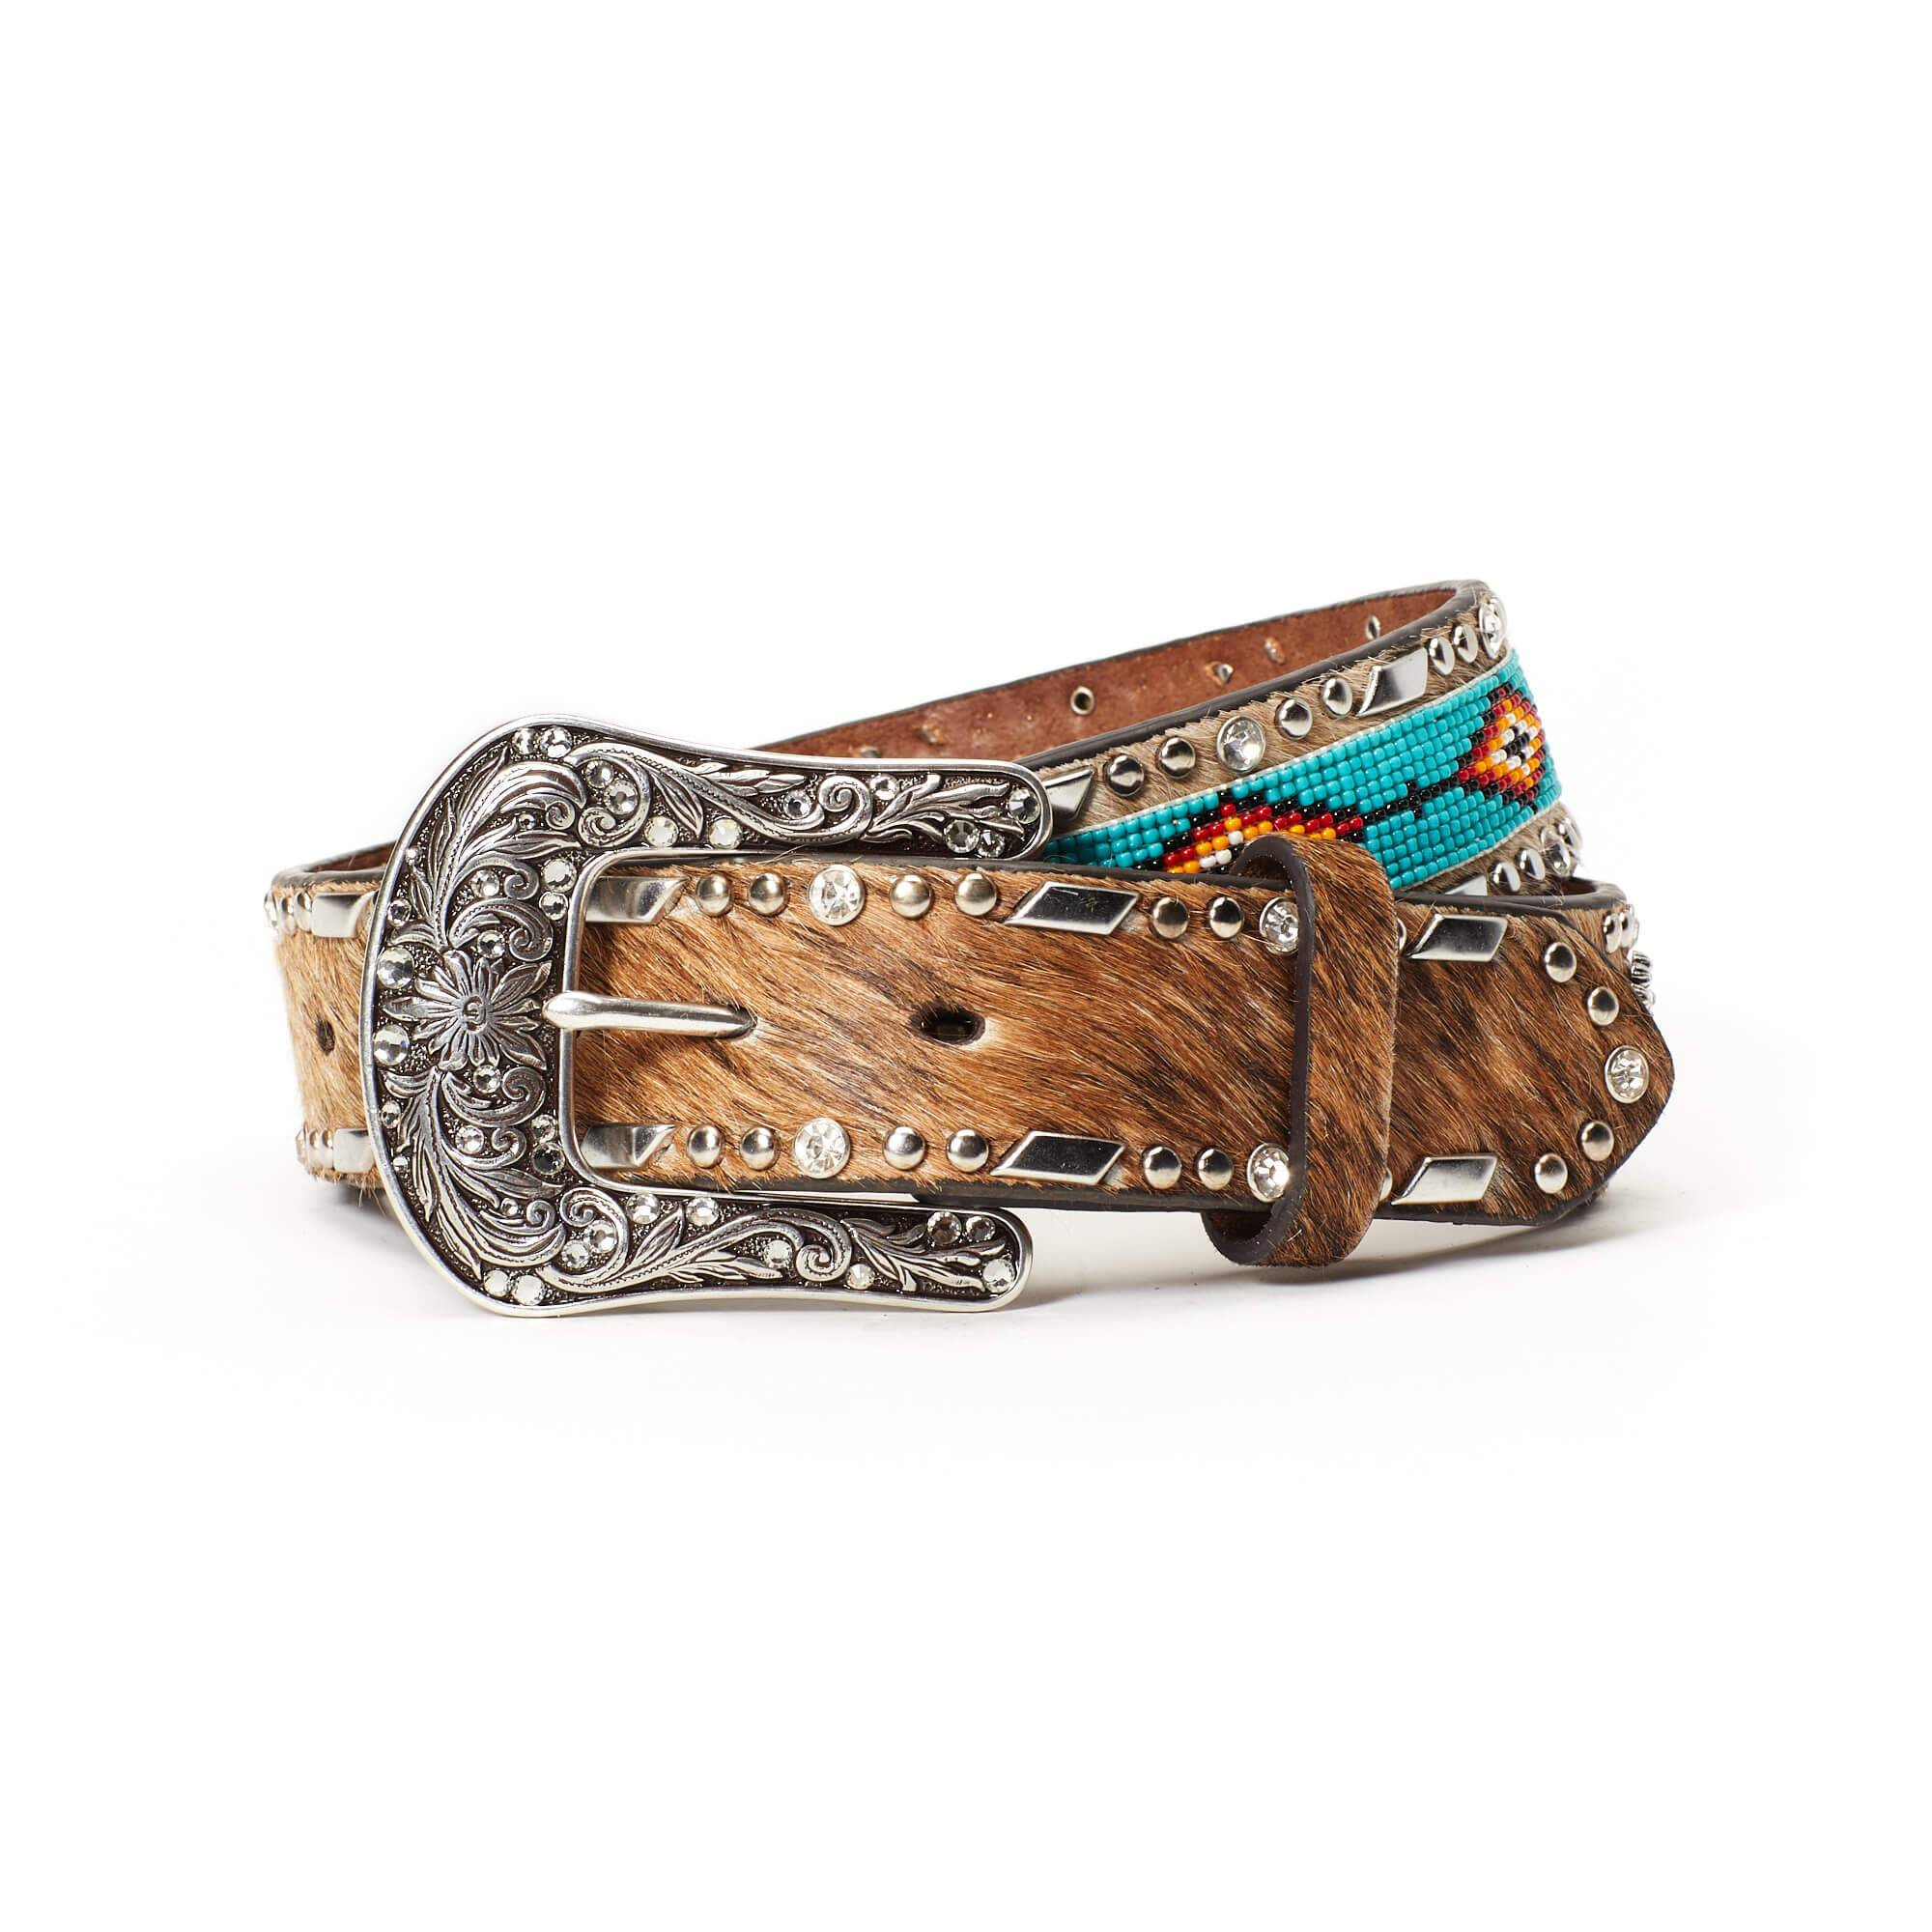 """Ariat Women's A.1 1/2""""mcchvrntqflrwcnctn Belt in Beaded Brown Leather, X-Large by Ariat"""